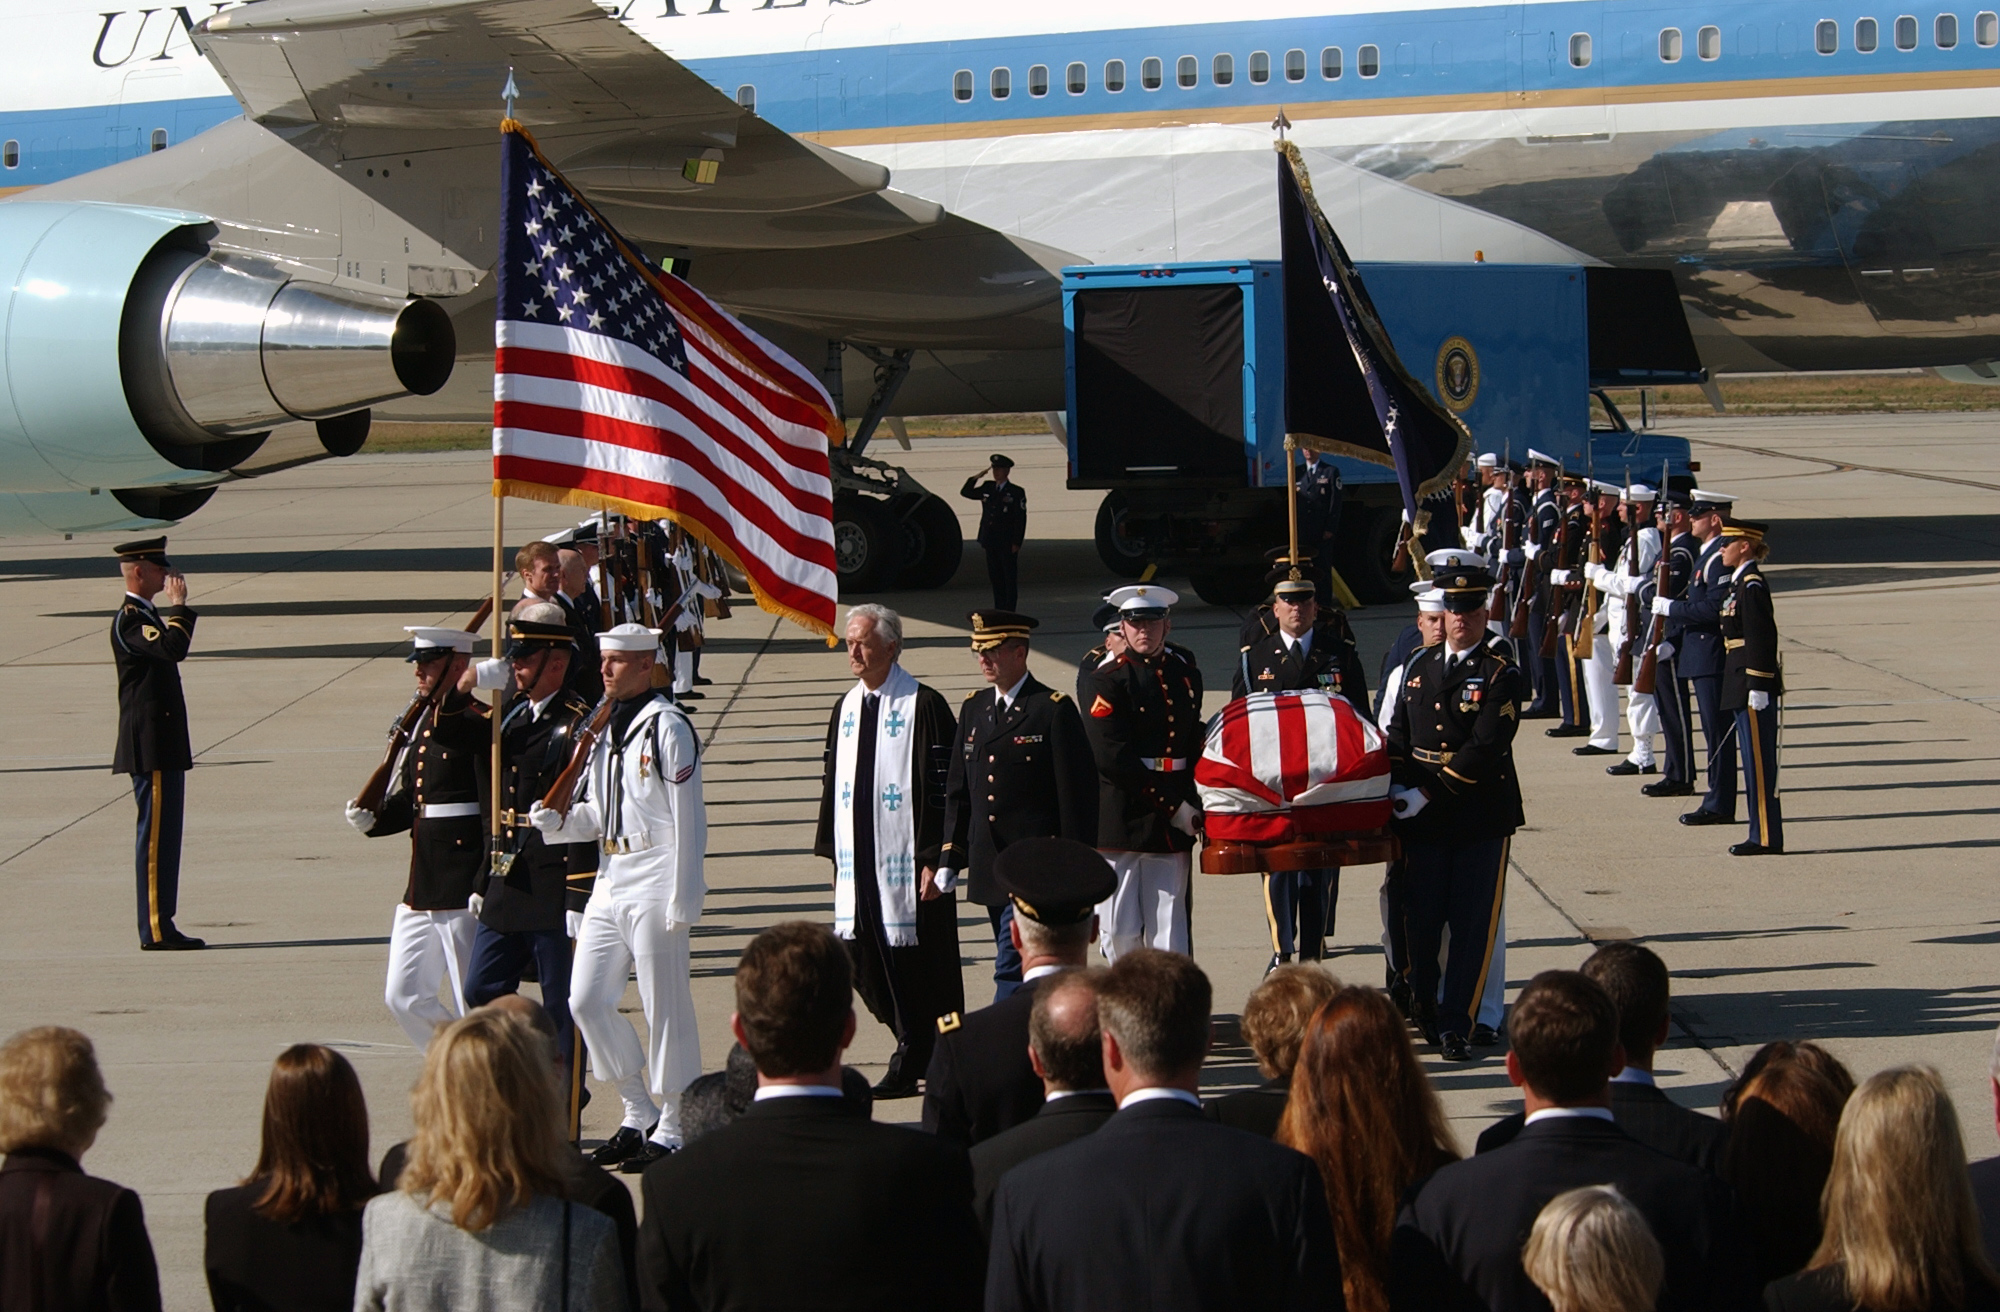 REAGANFUNERAL-casket carried to hearse